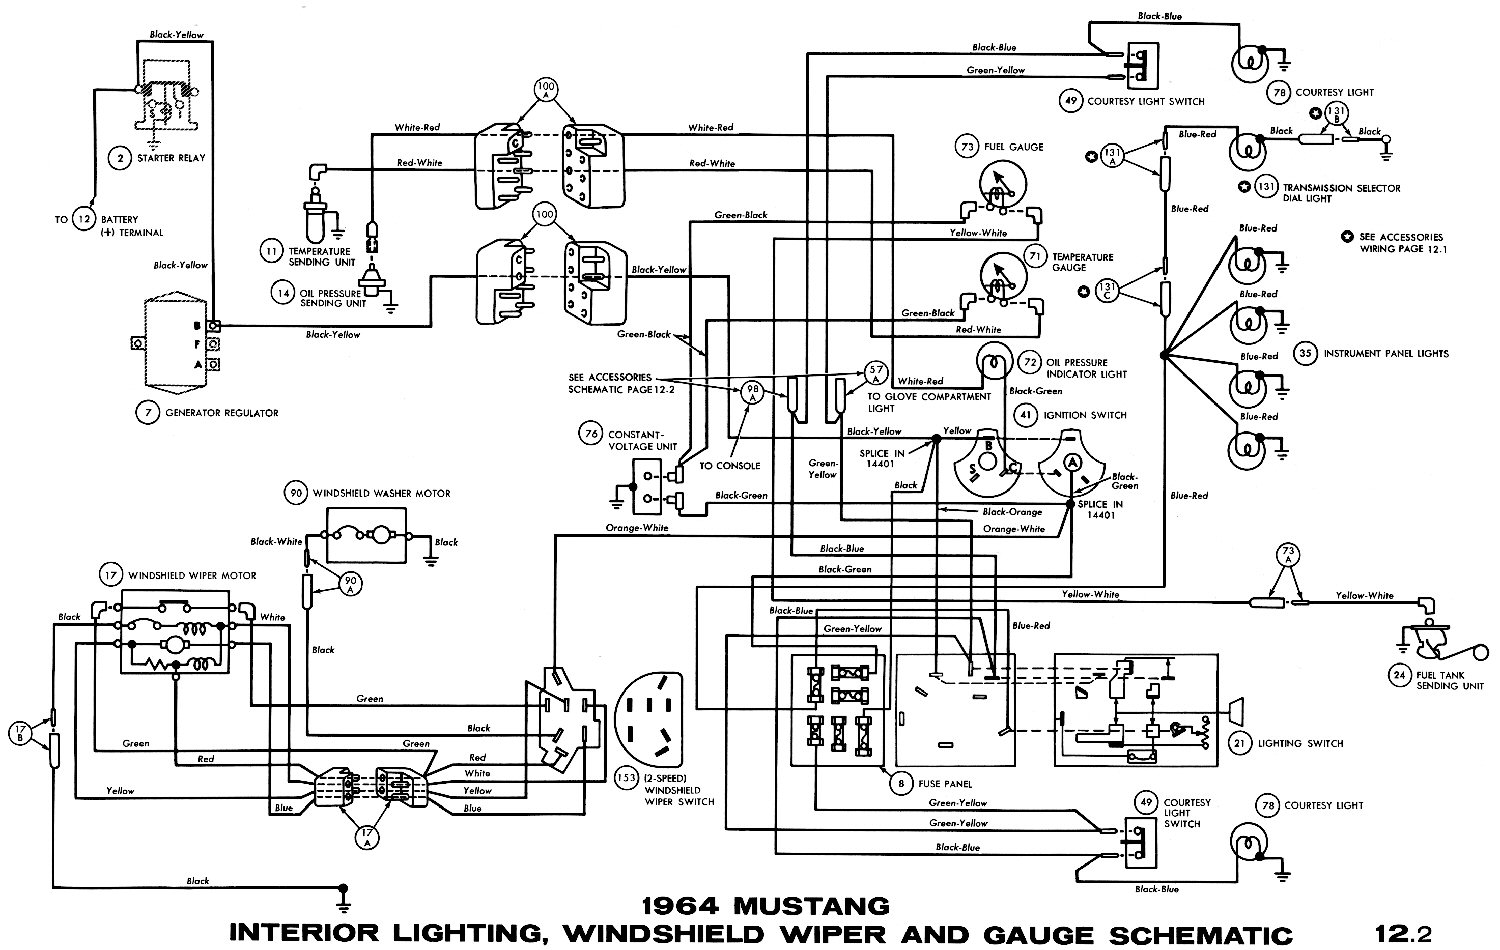 1964k wiring diagram for 1970 ford mustang readingrat net 65 mustang tail light wiring diagram at n-0.co